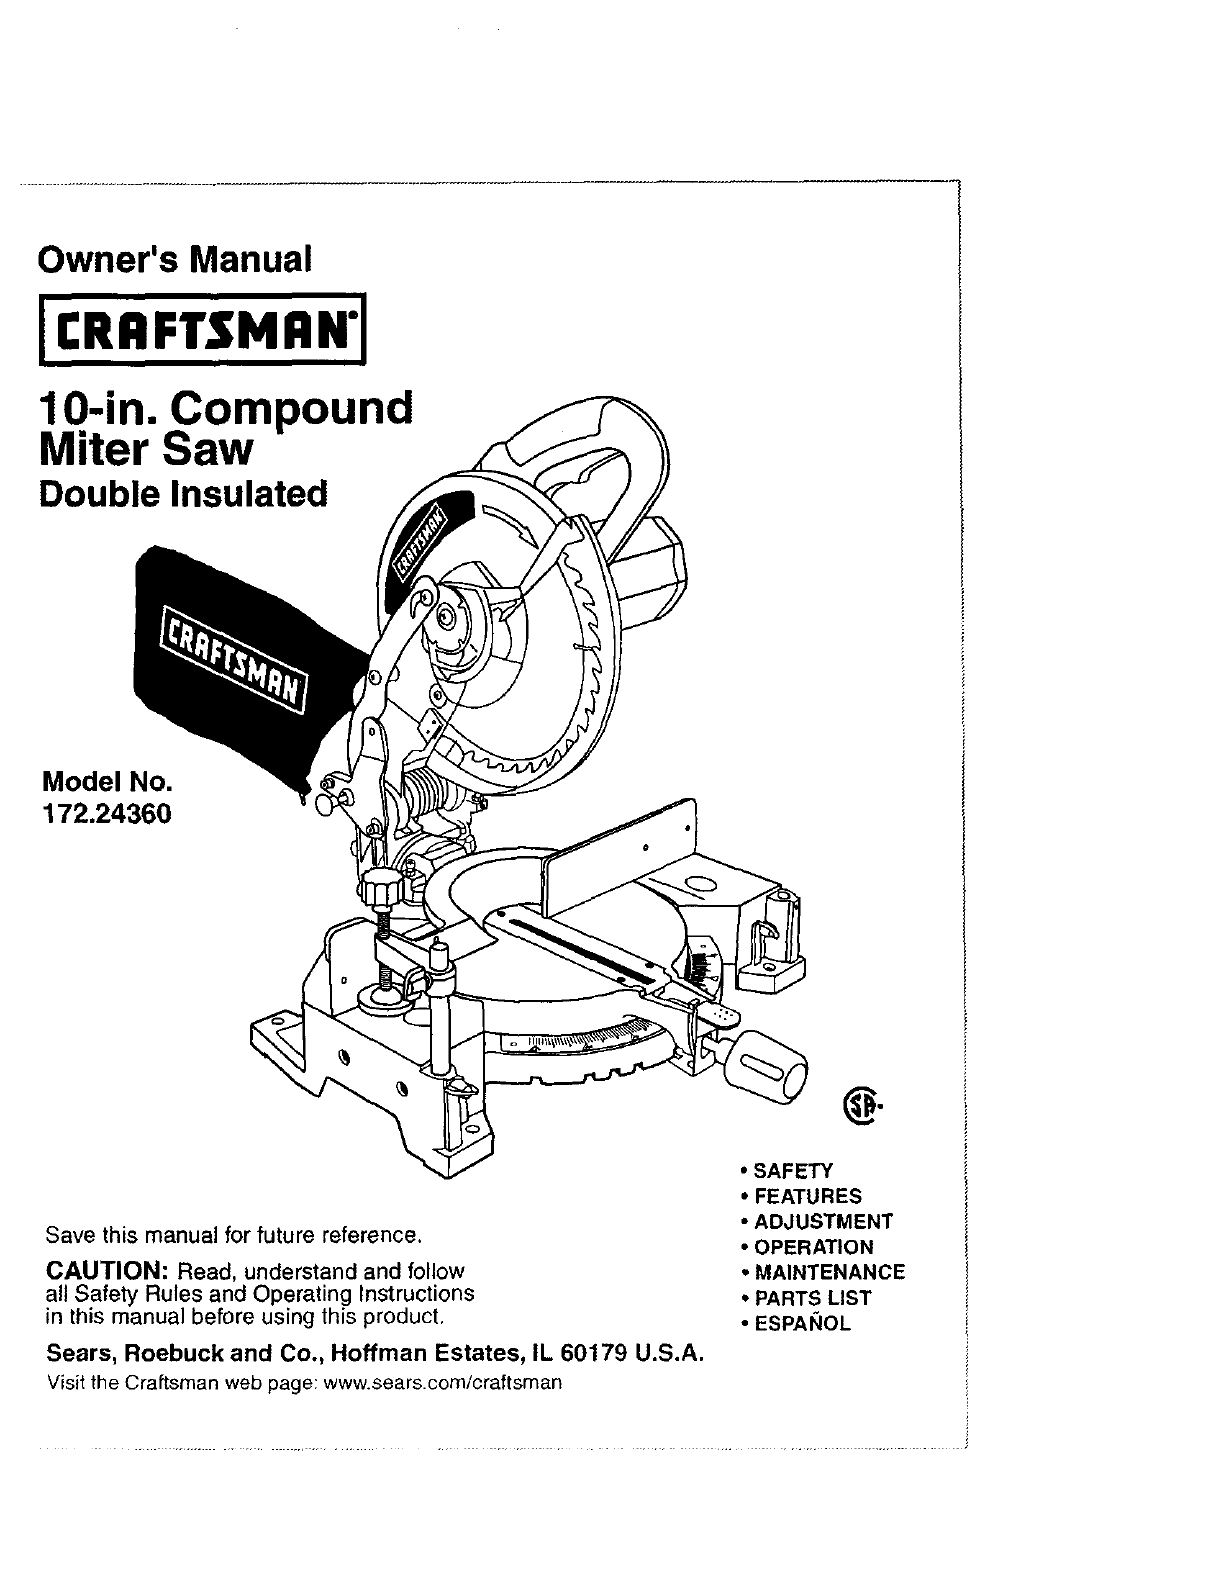 craftsman 17224360 user manual 10 compound miter saw manuals and guides  l0408143  usermanual.wiki